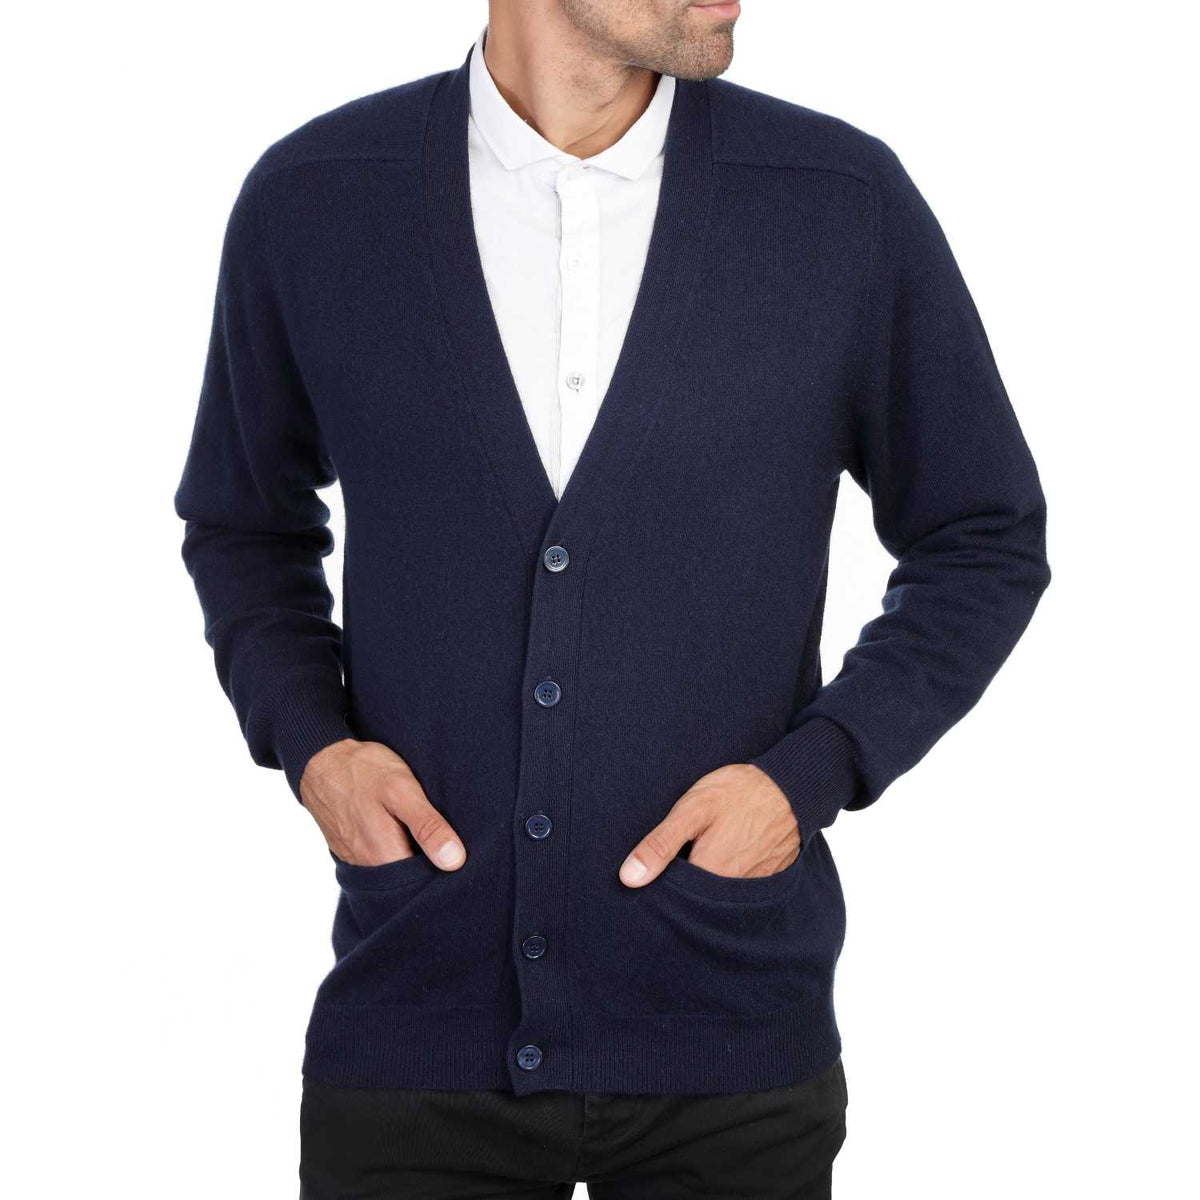 Mens Navy Blue Cashmere Cardigan | Front | Shop at The Cashmere Choice | London